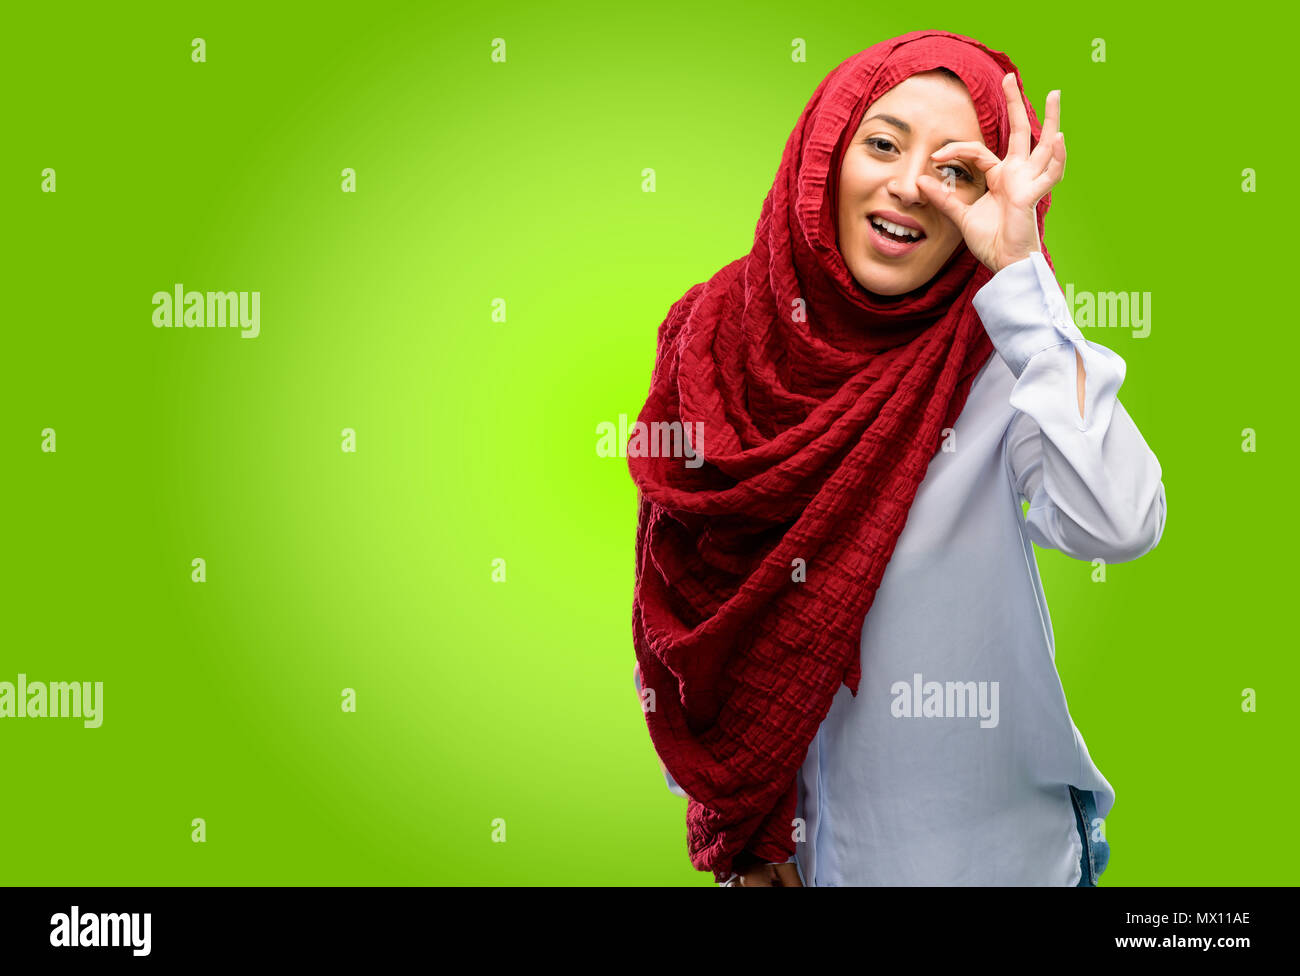 Young arab woman wearing hijab looking at camera through her fingers in ok gesture imitating